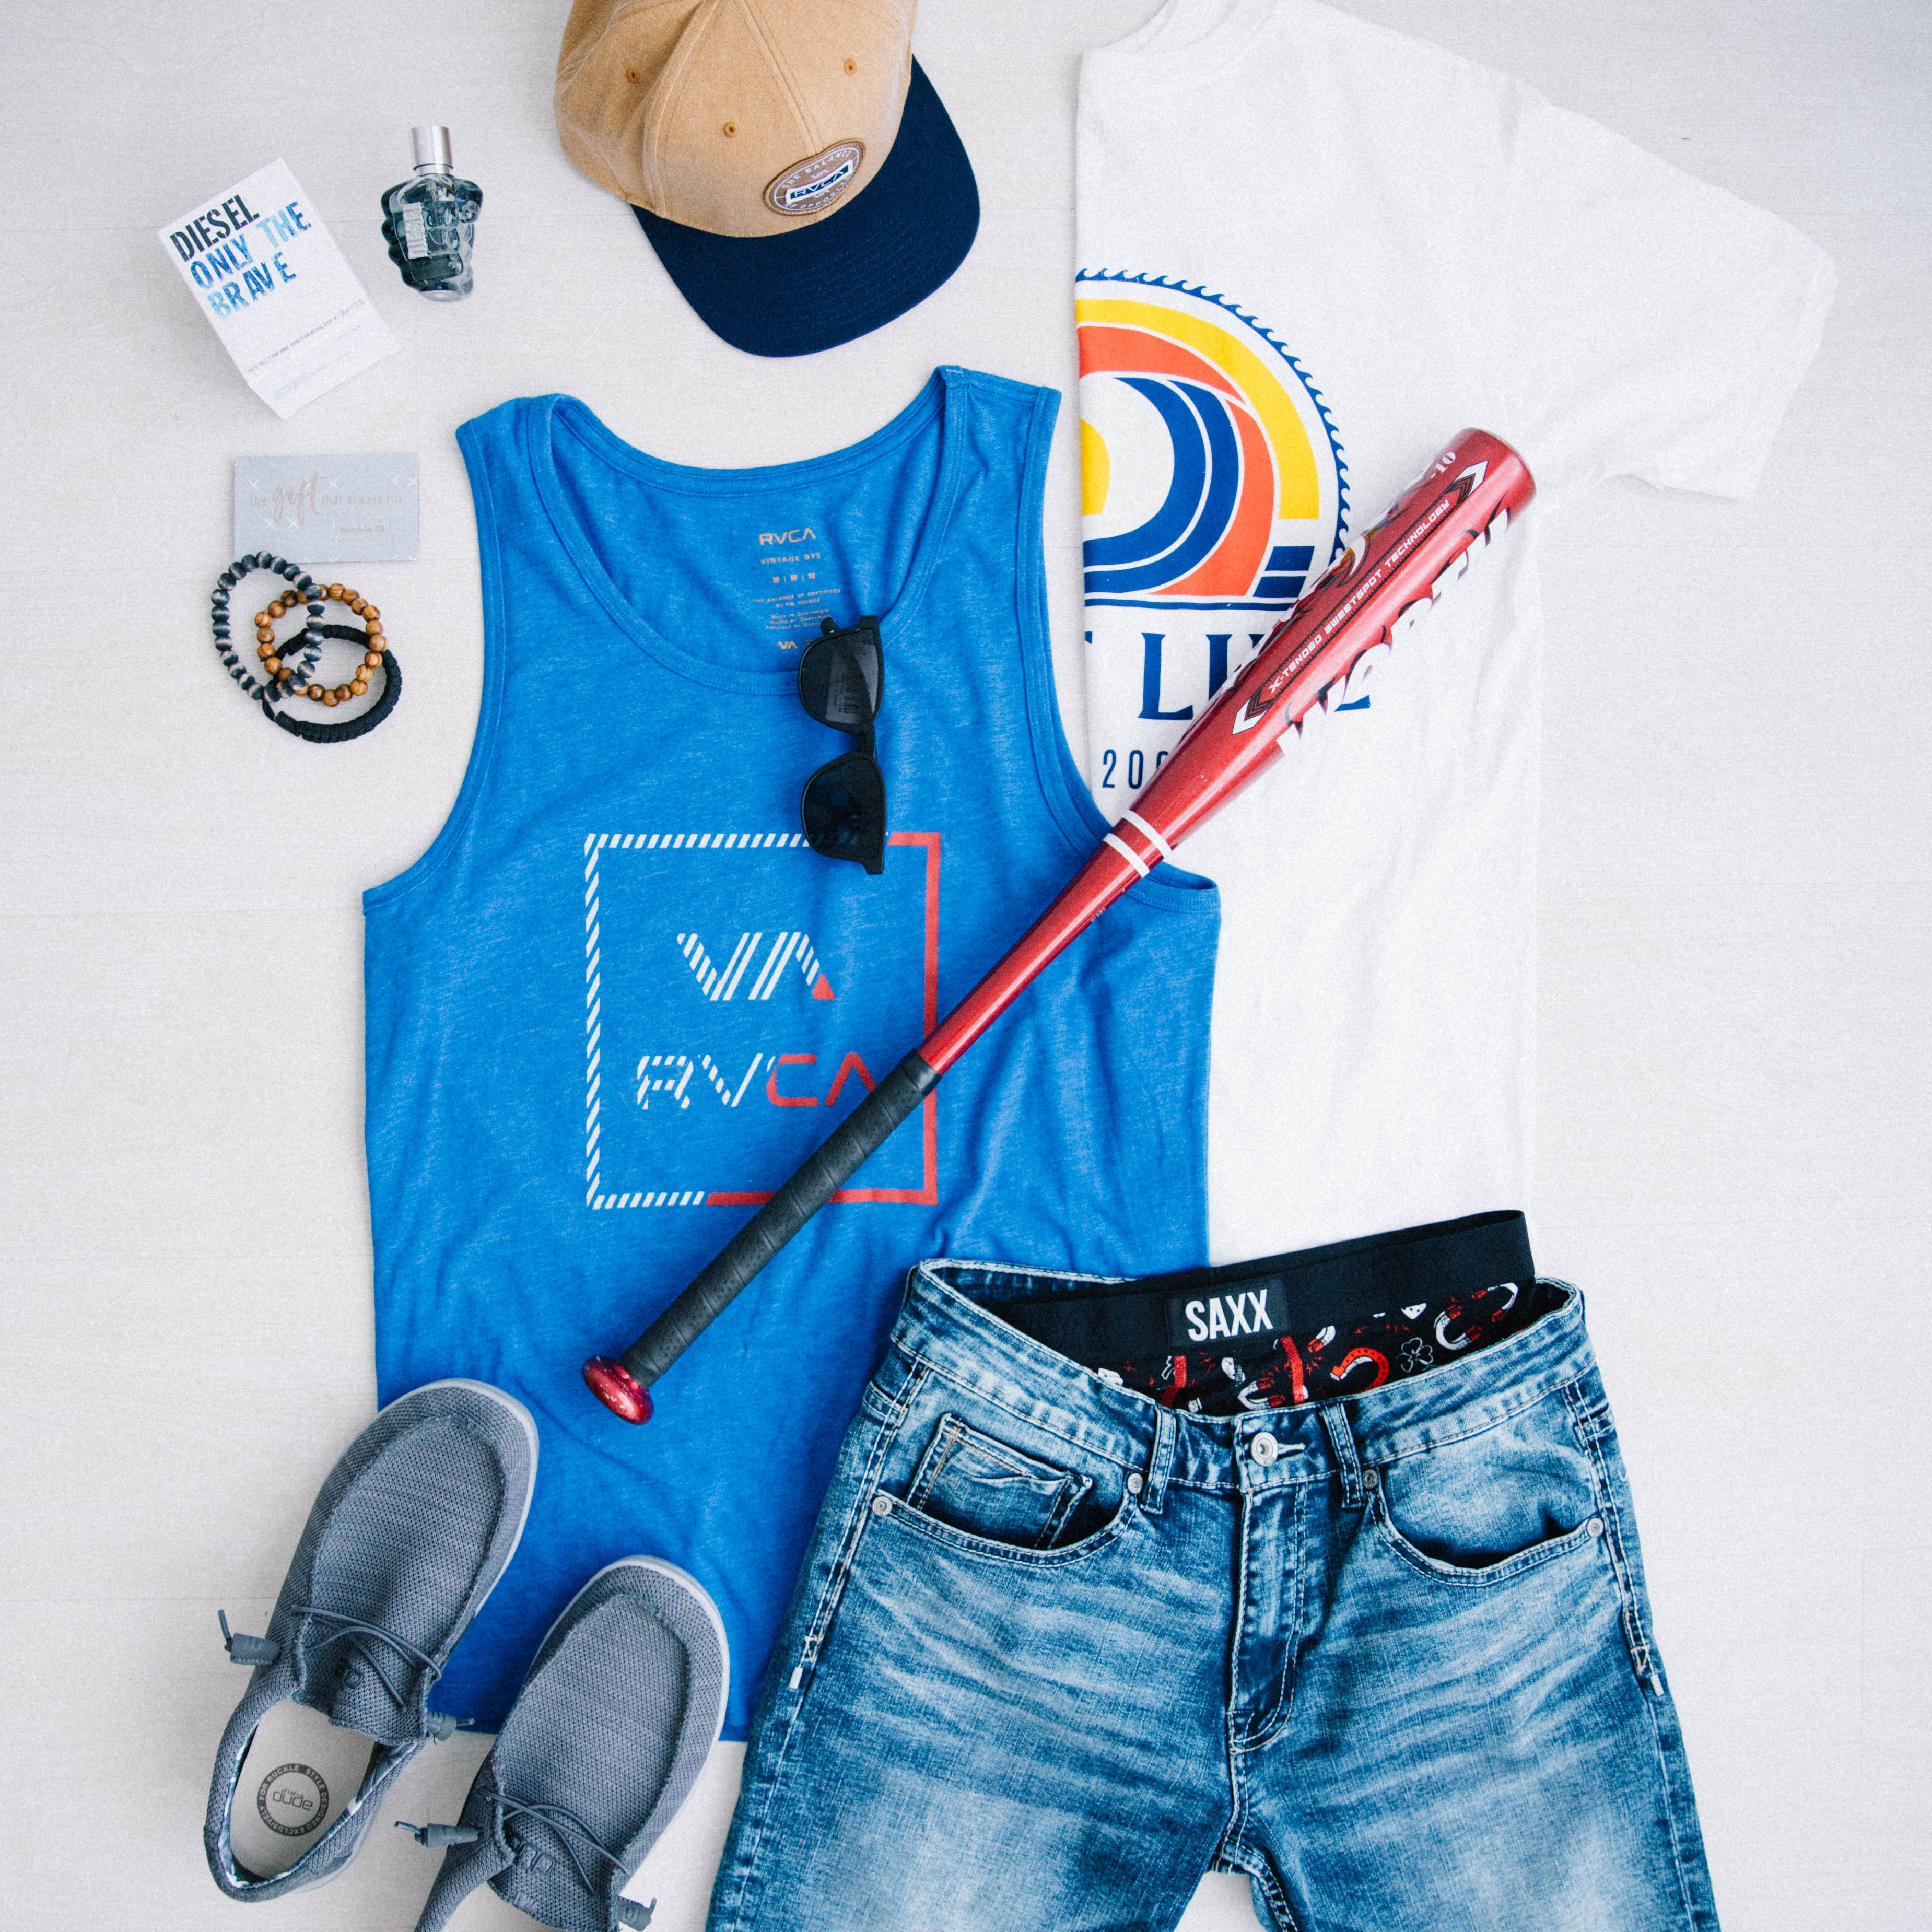 Father's Day Gifts - Hey Dude Shoes, Comfort Stretch Shorts, Cologne, Graphic T-shirts and Tanks